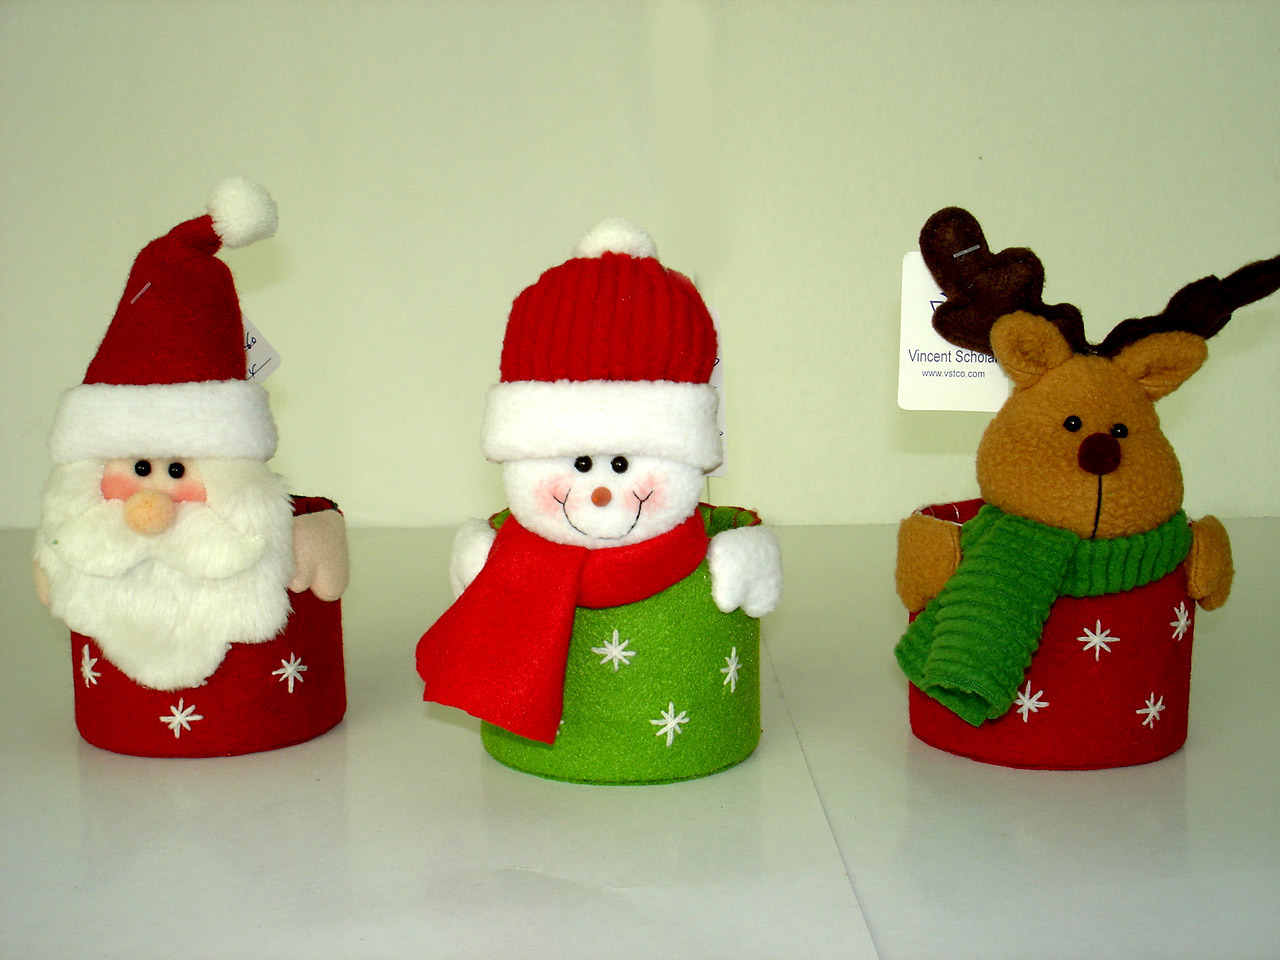 santa claus and his team of magical flying reindeer led by